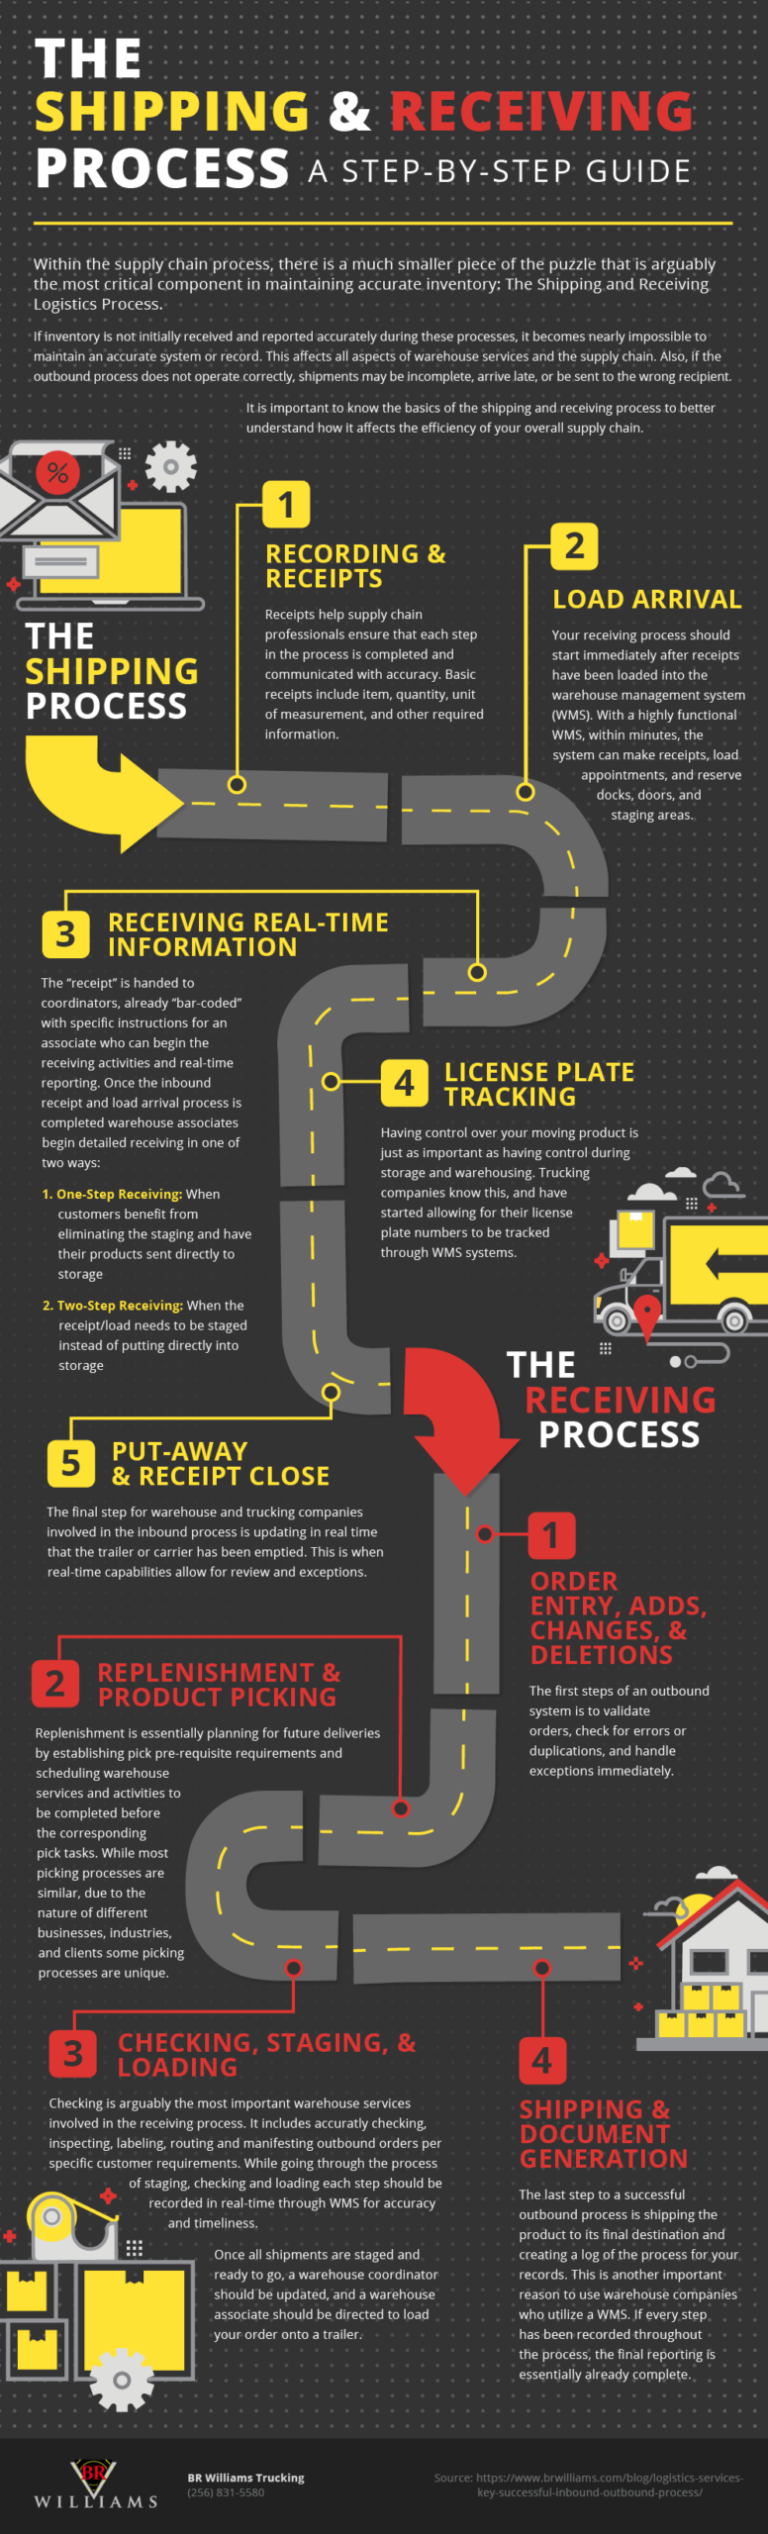 The Shipping & Receiving Process: A Step-by-Step Guide Infographic